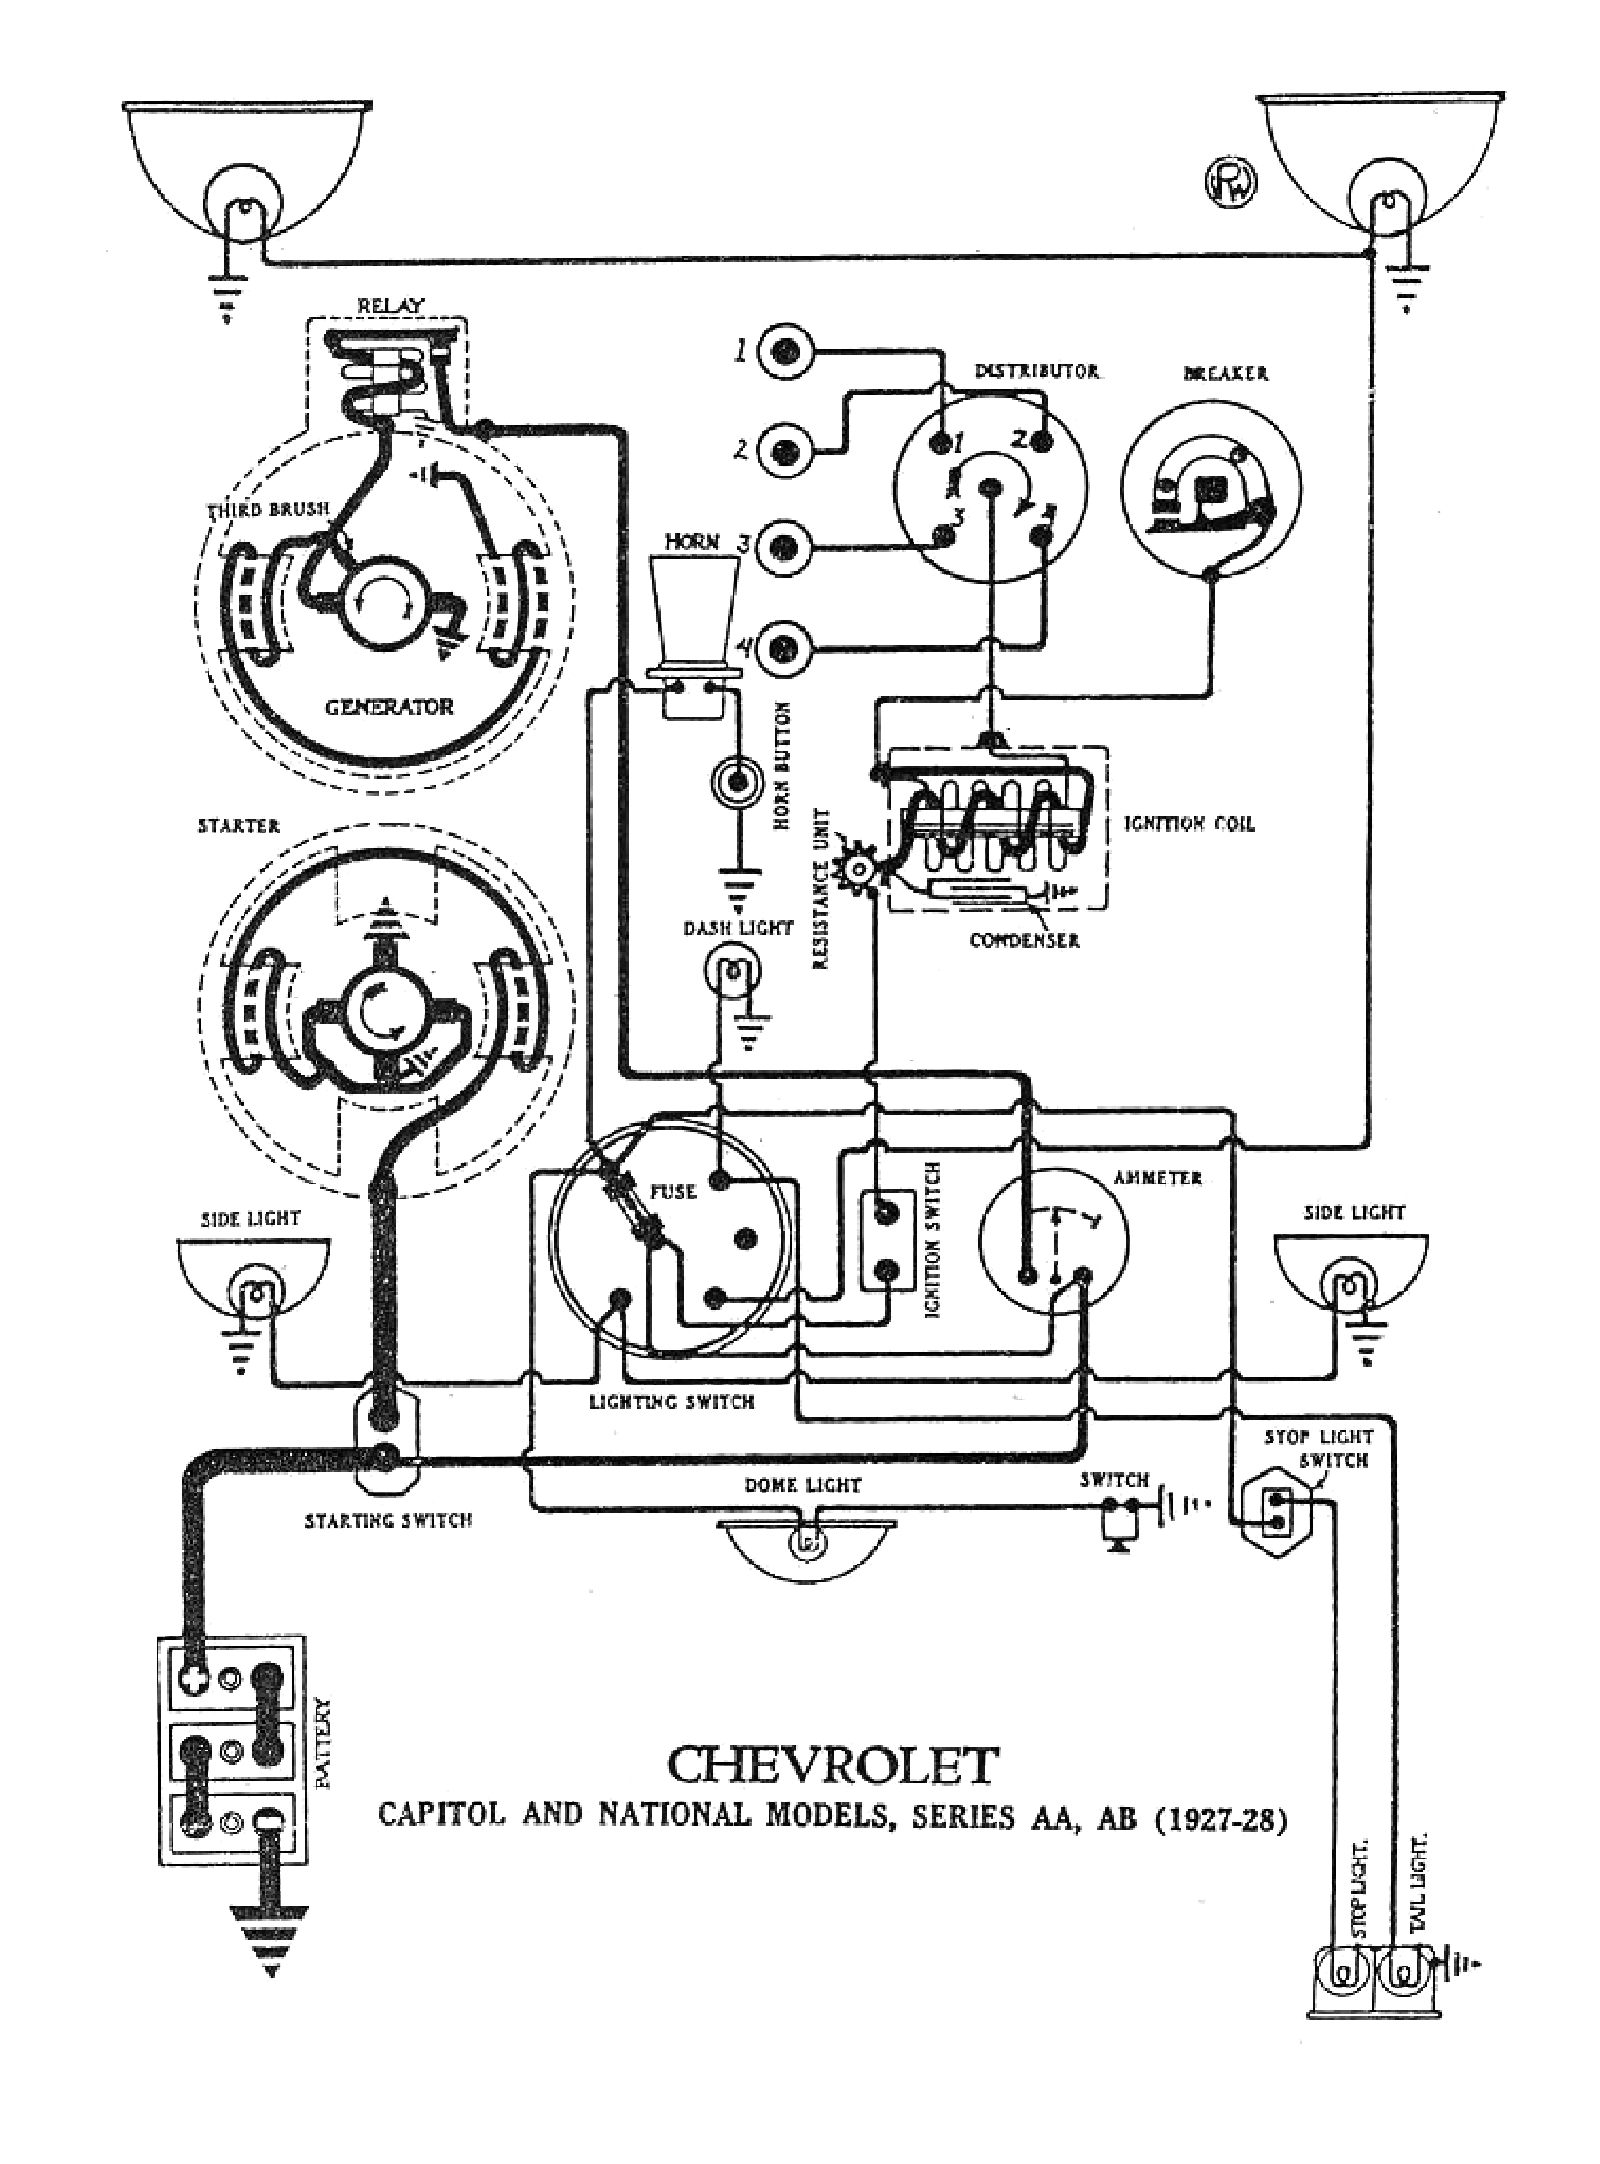 2728wiring chevy wiring diagrams ford model a wiring diagram at fashall.co